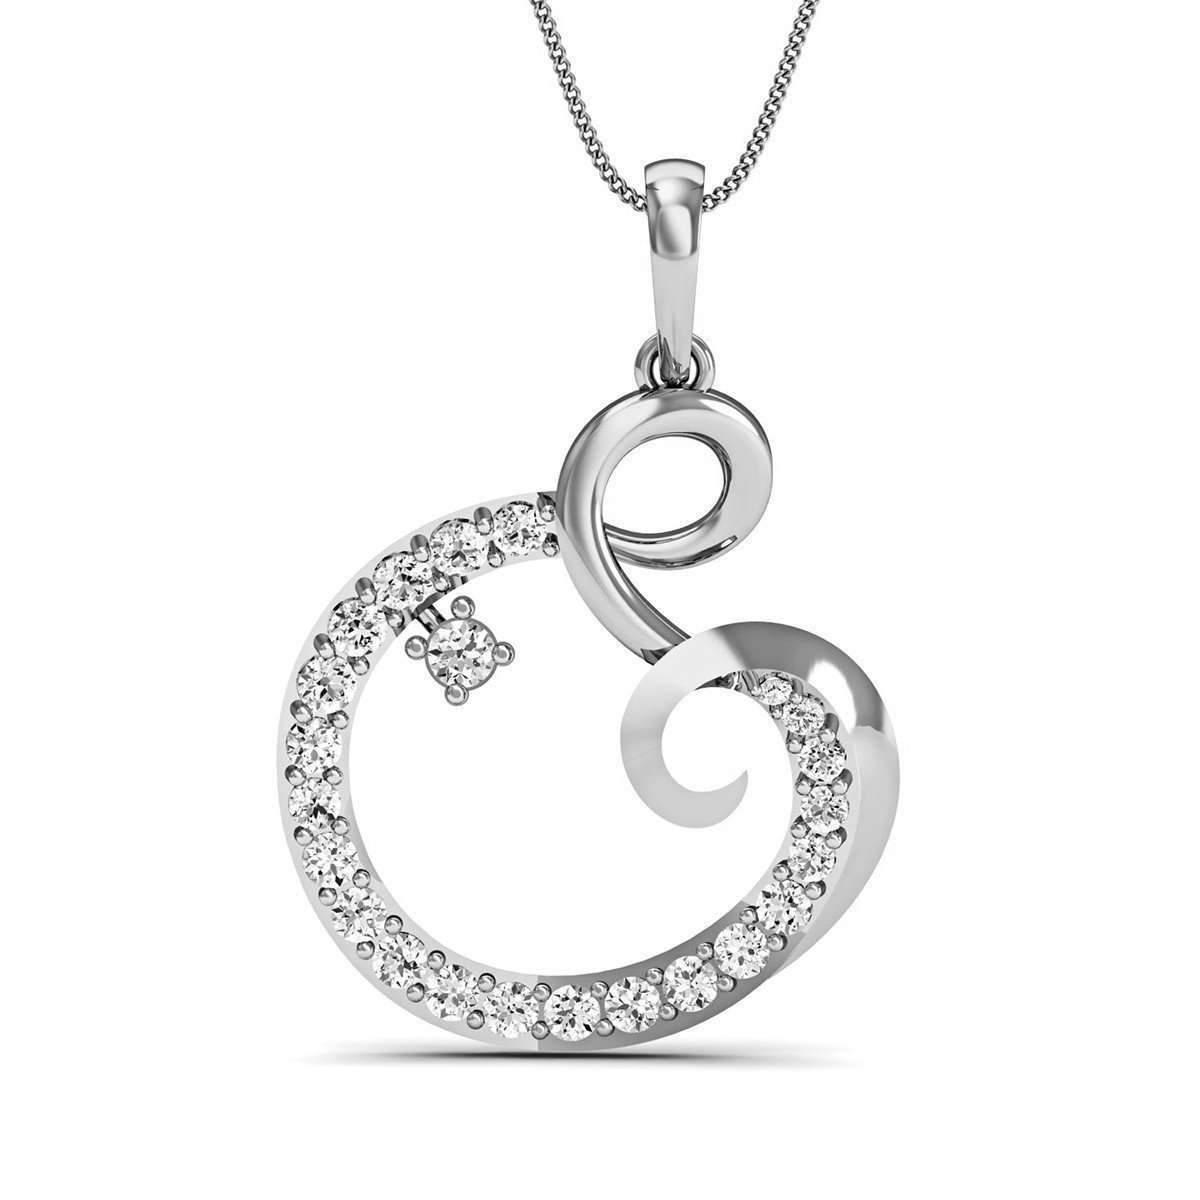 Diamoire Jewels Nature Inspired Pave Set Diamond Pendant in 18kt White Gold d2t13oTRjo